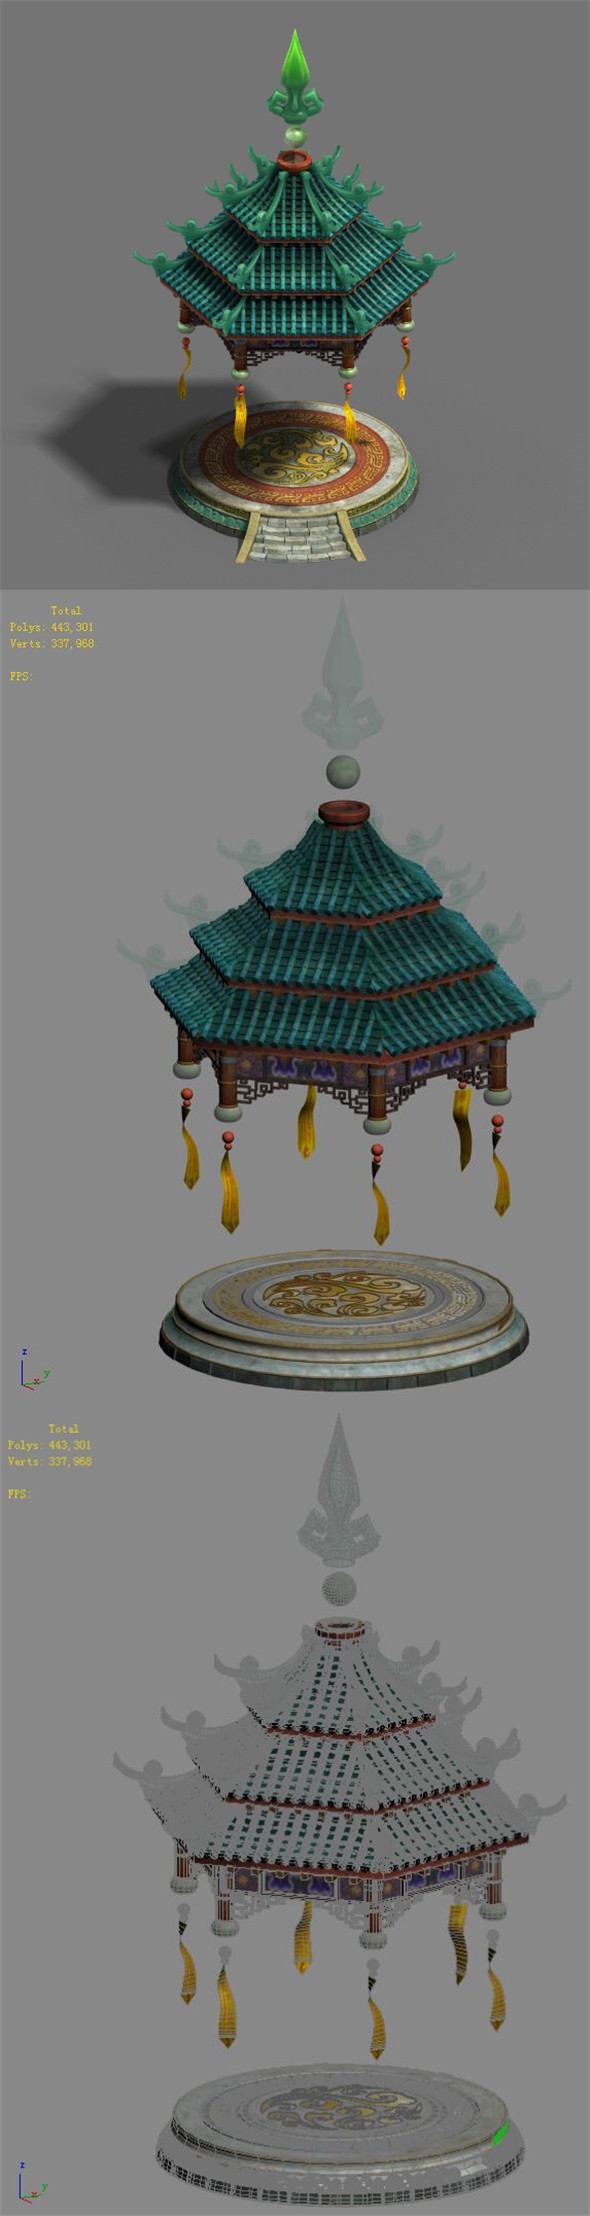 Shushan - small pavilion - 3DOcean Item for Sale